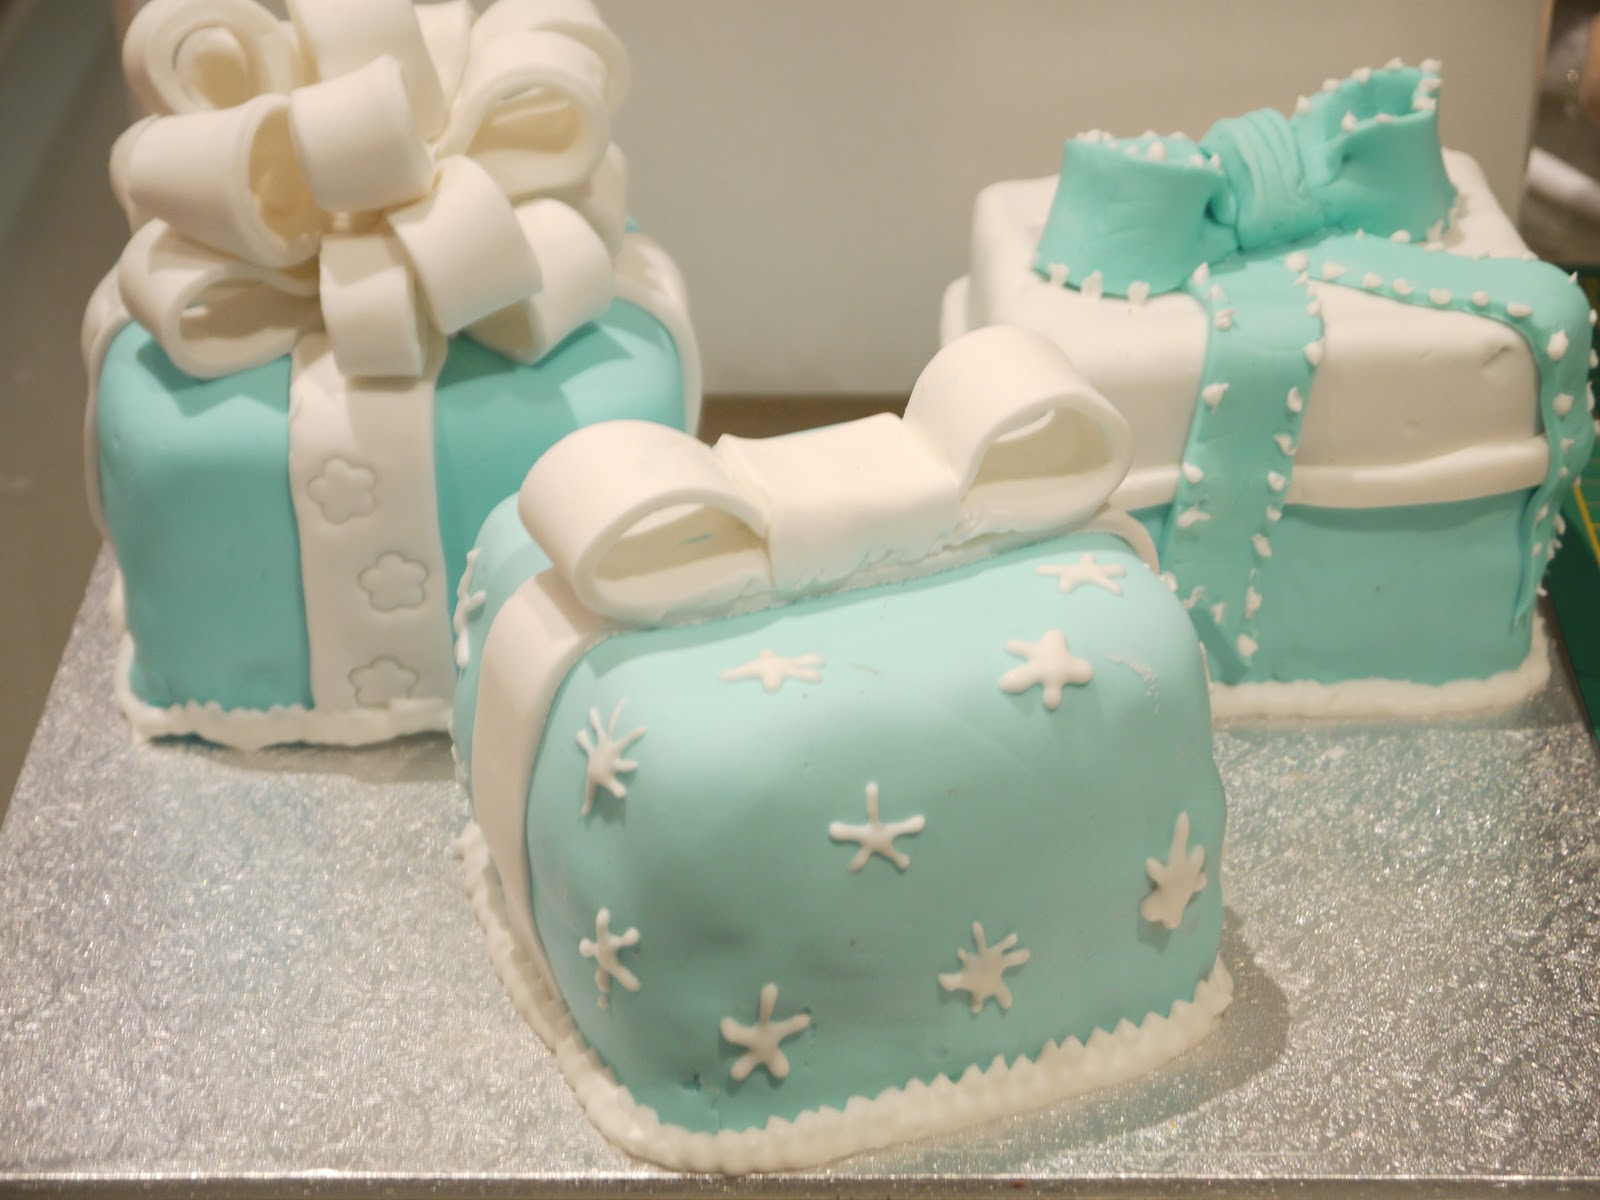 Sugar on top mini tiffany gift box cakes mini tiffany gift box cakes negle Image collections